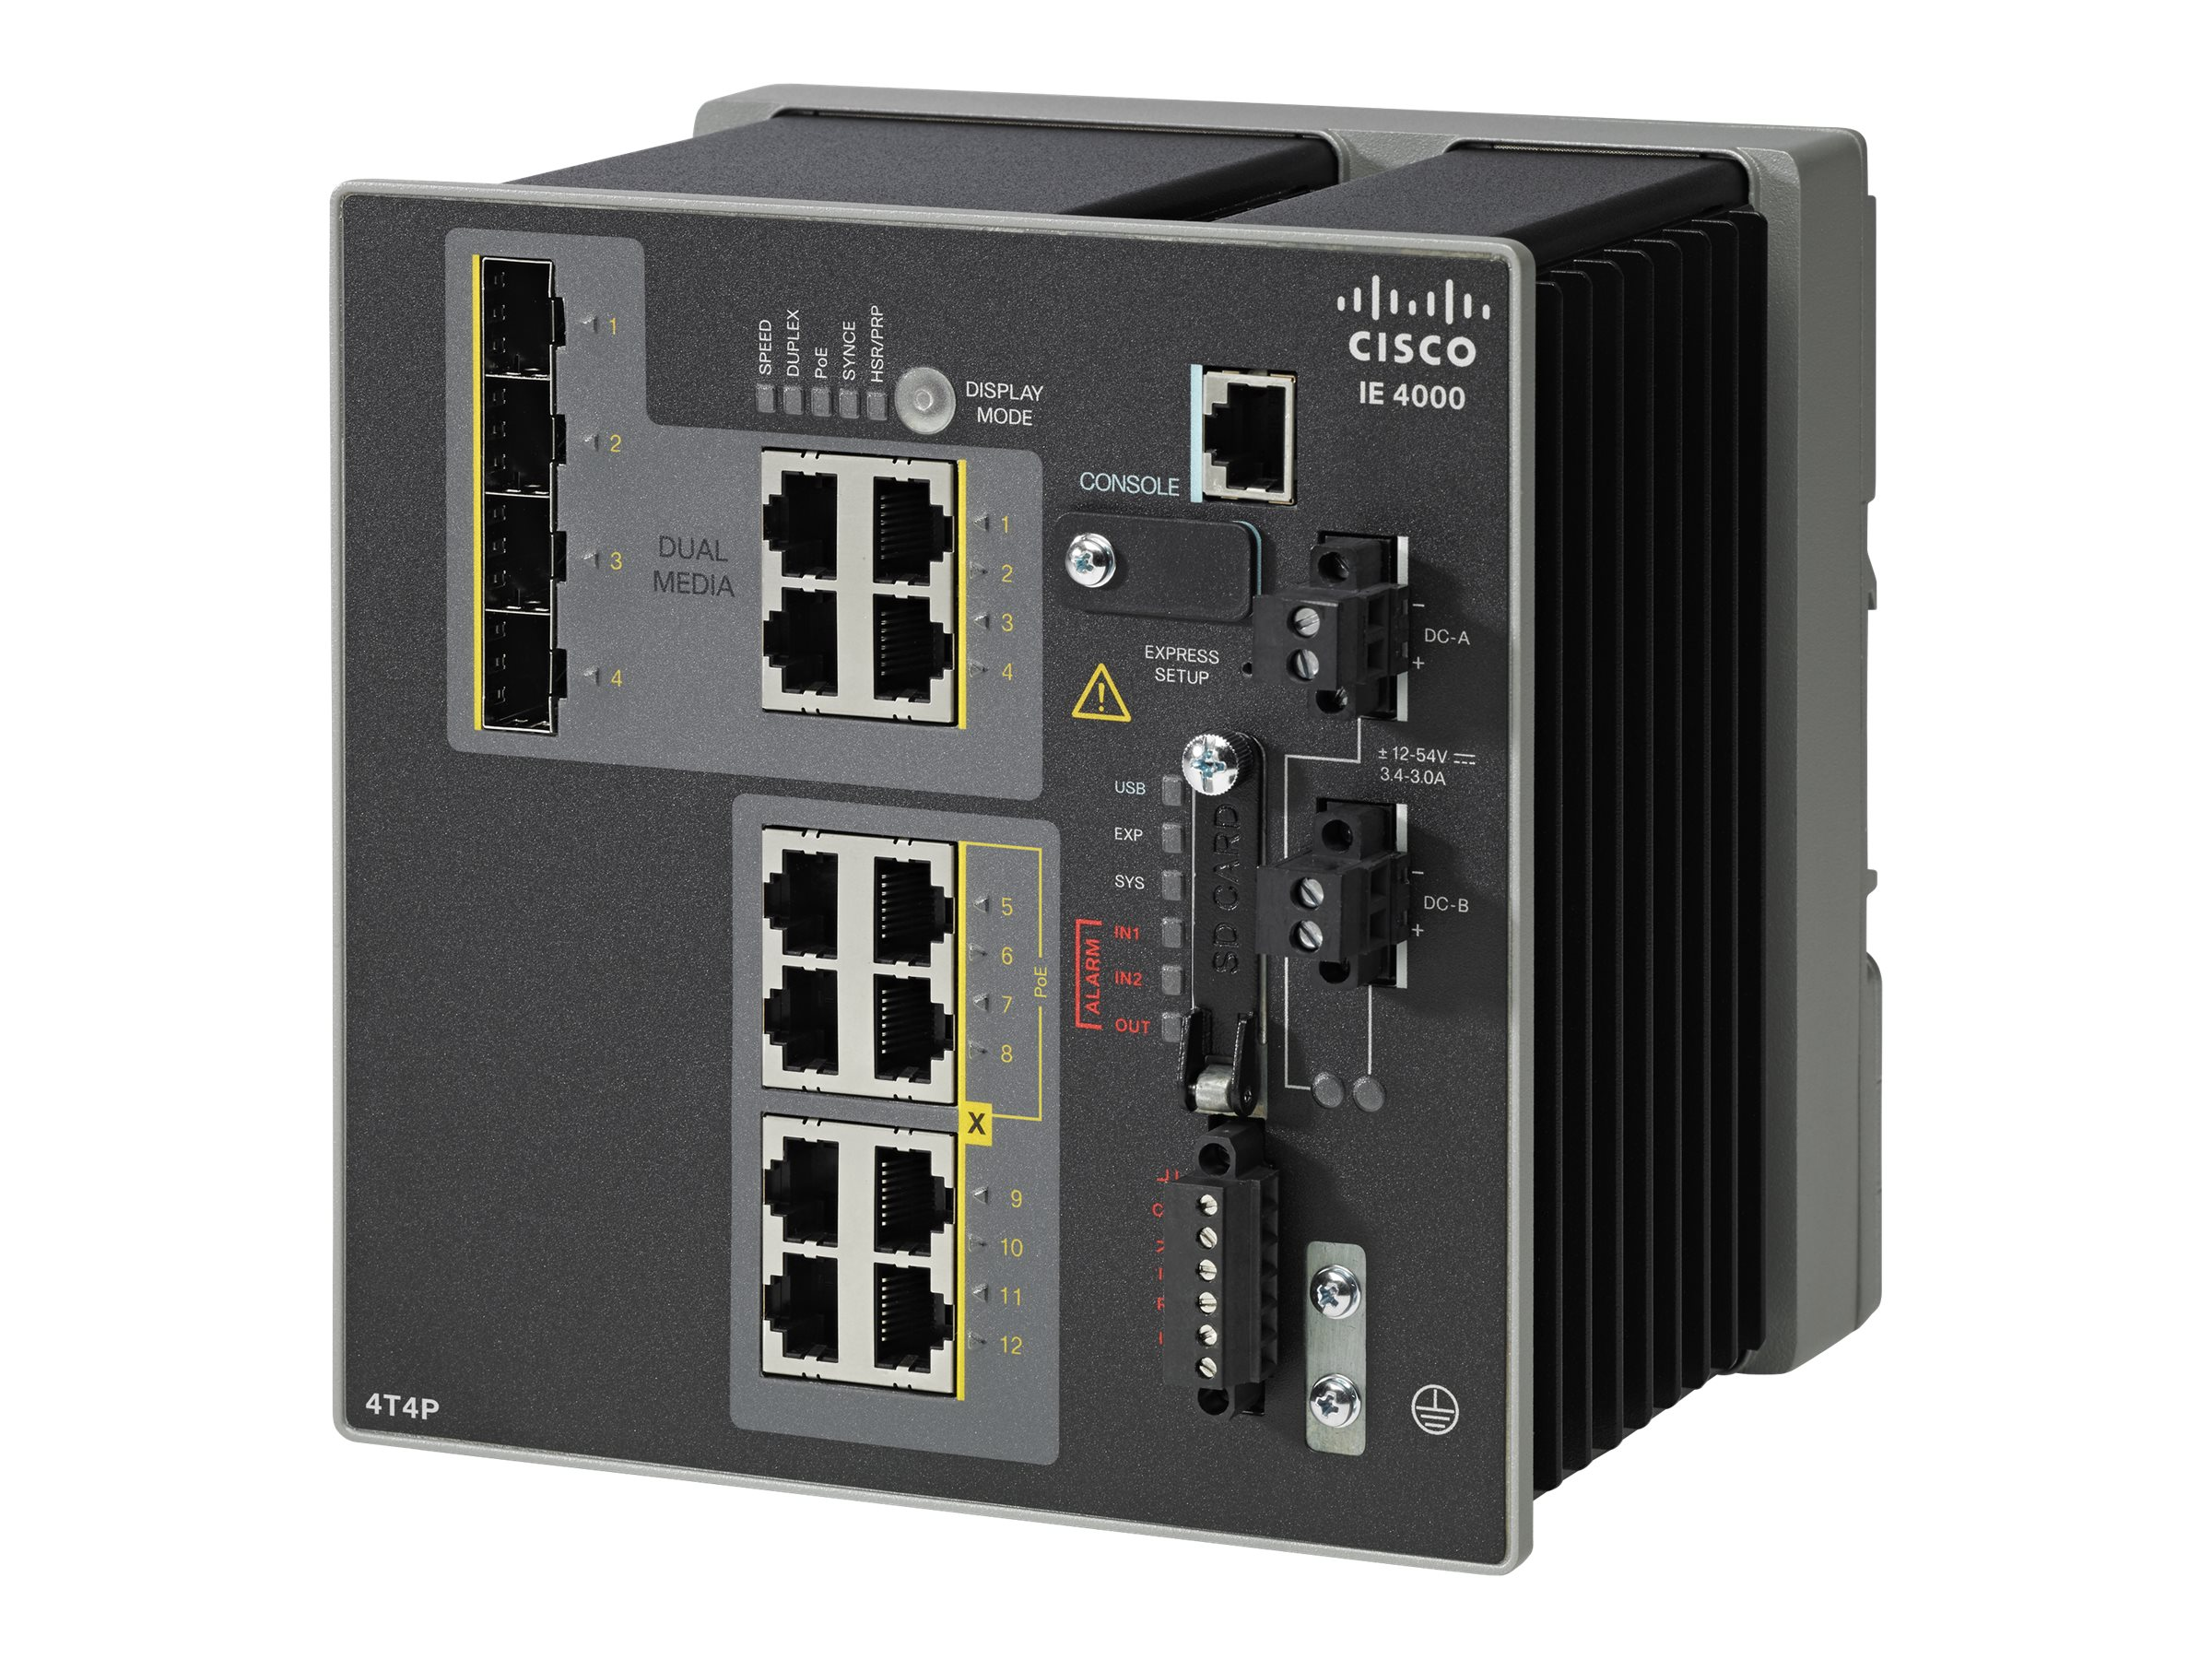 Cisco IE-4000-4T4P4G-E 12-Port (4x4G Uplink, 4xRJ-45, 4xPoE) Industrial Ethernet Switch, IE-4000-4T4P4G-E, 18718643, Network Switches